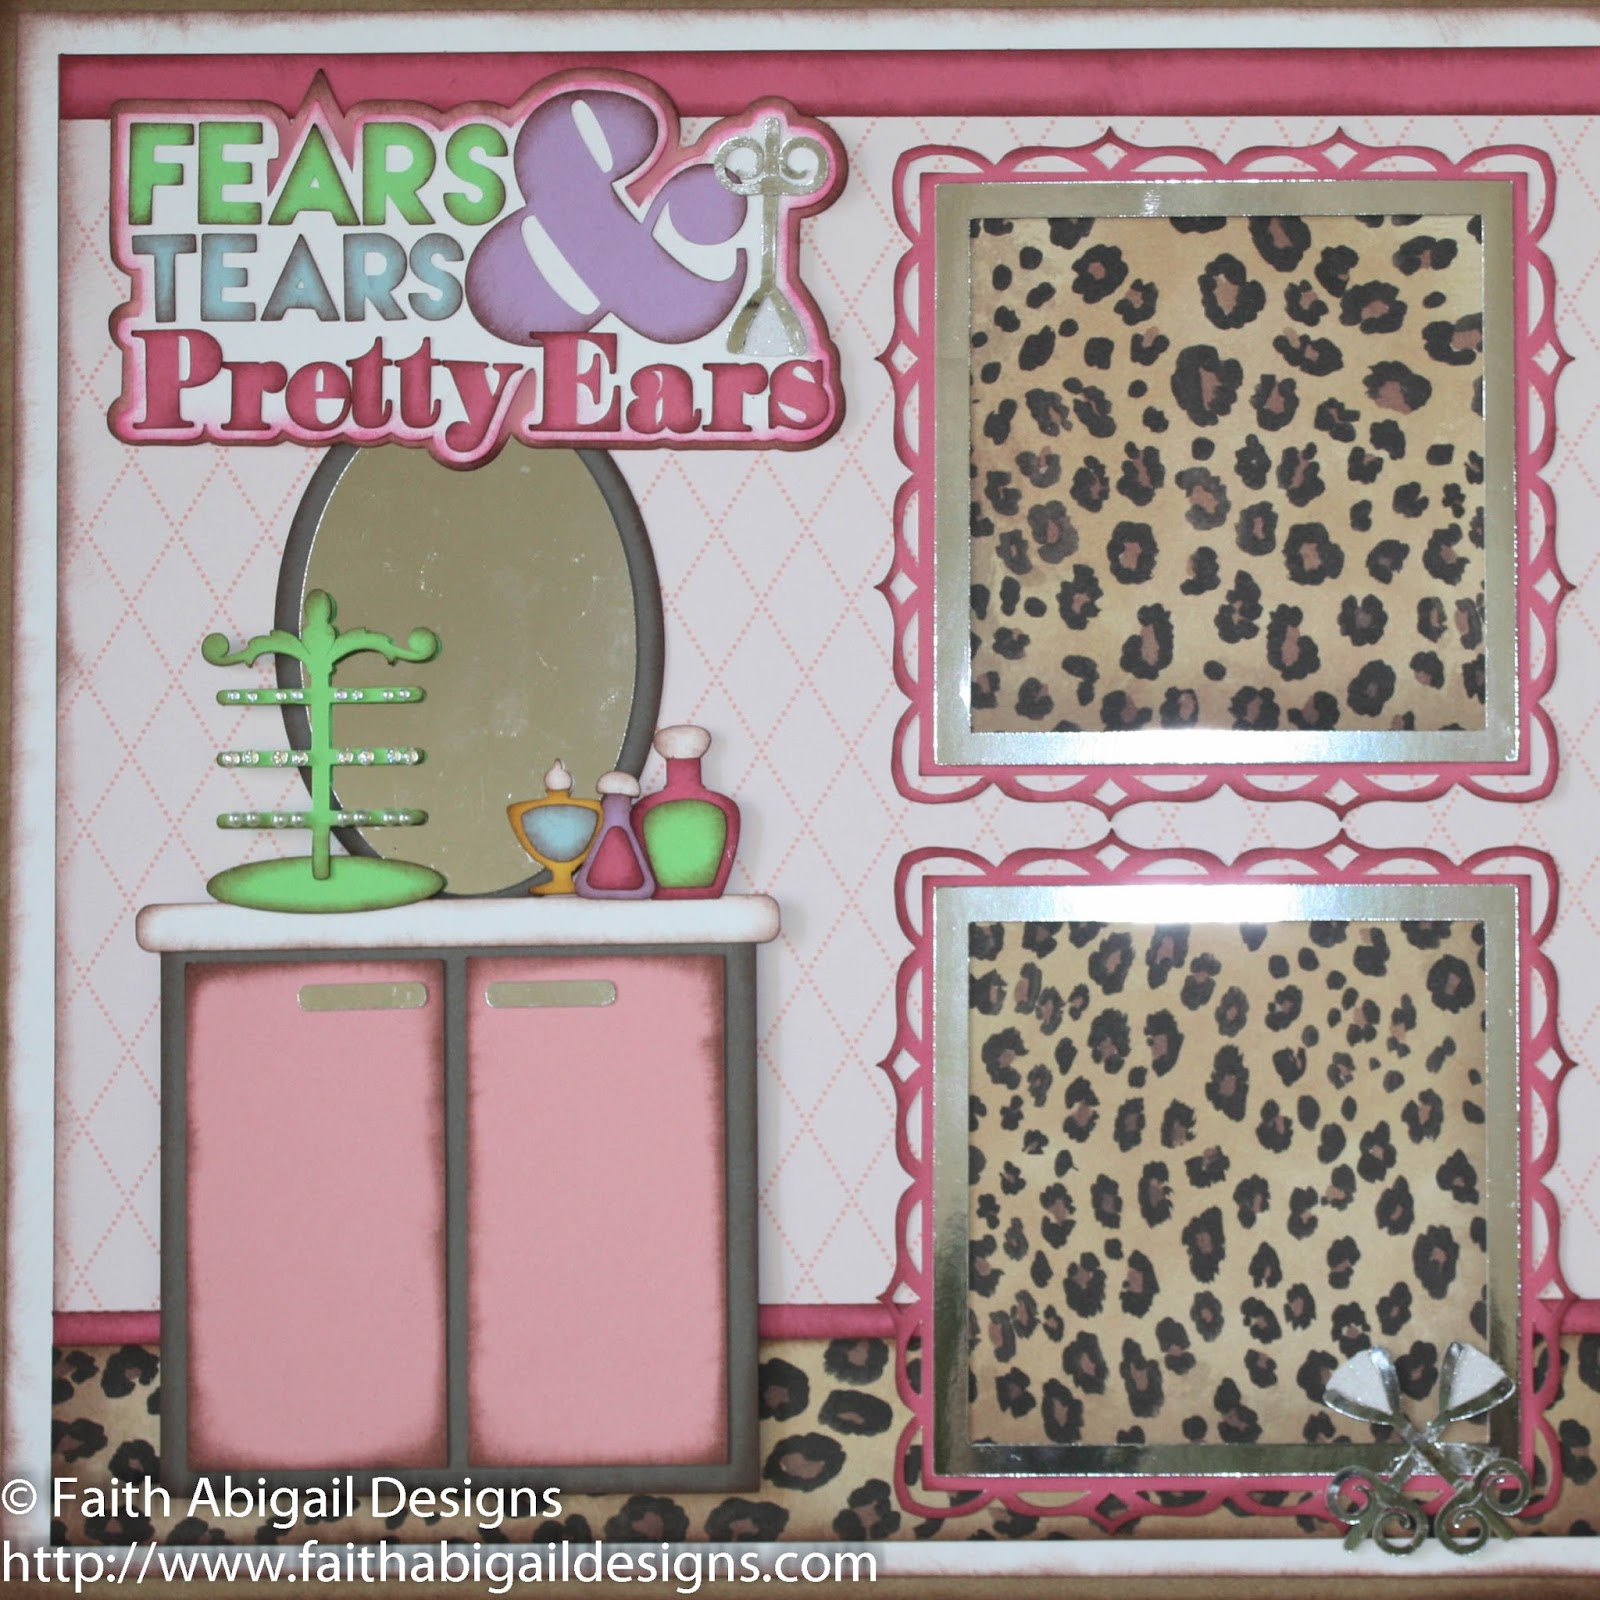 Hello kitty scrapbook ideas - This Is A Standard 12 X12 Double Page Layout Featuring Four 4 X4 Photo Mats